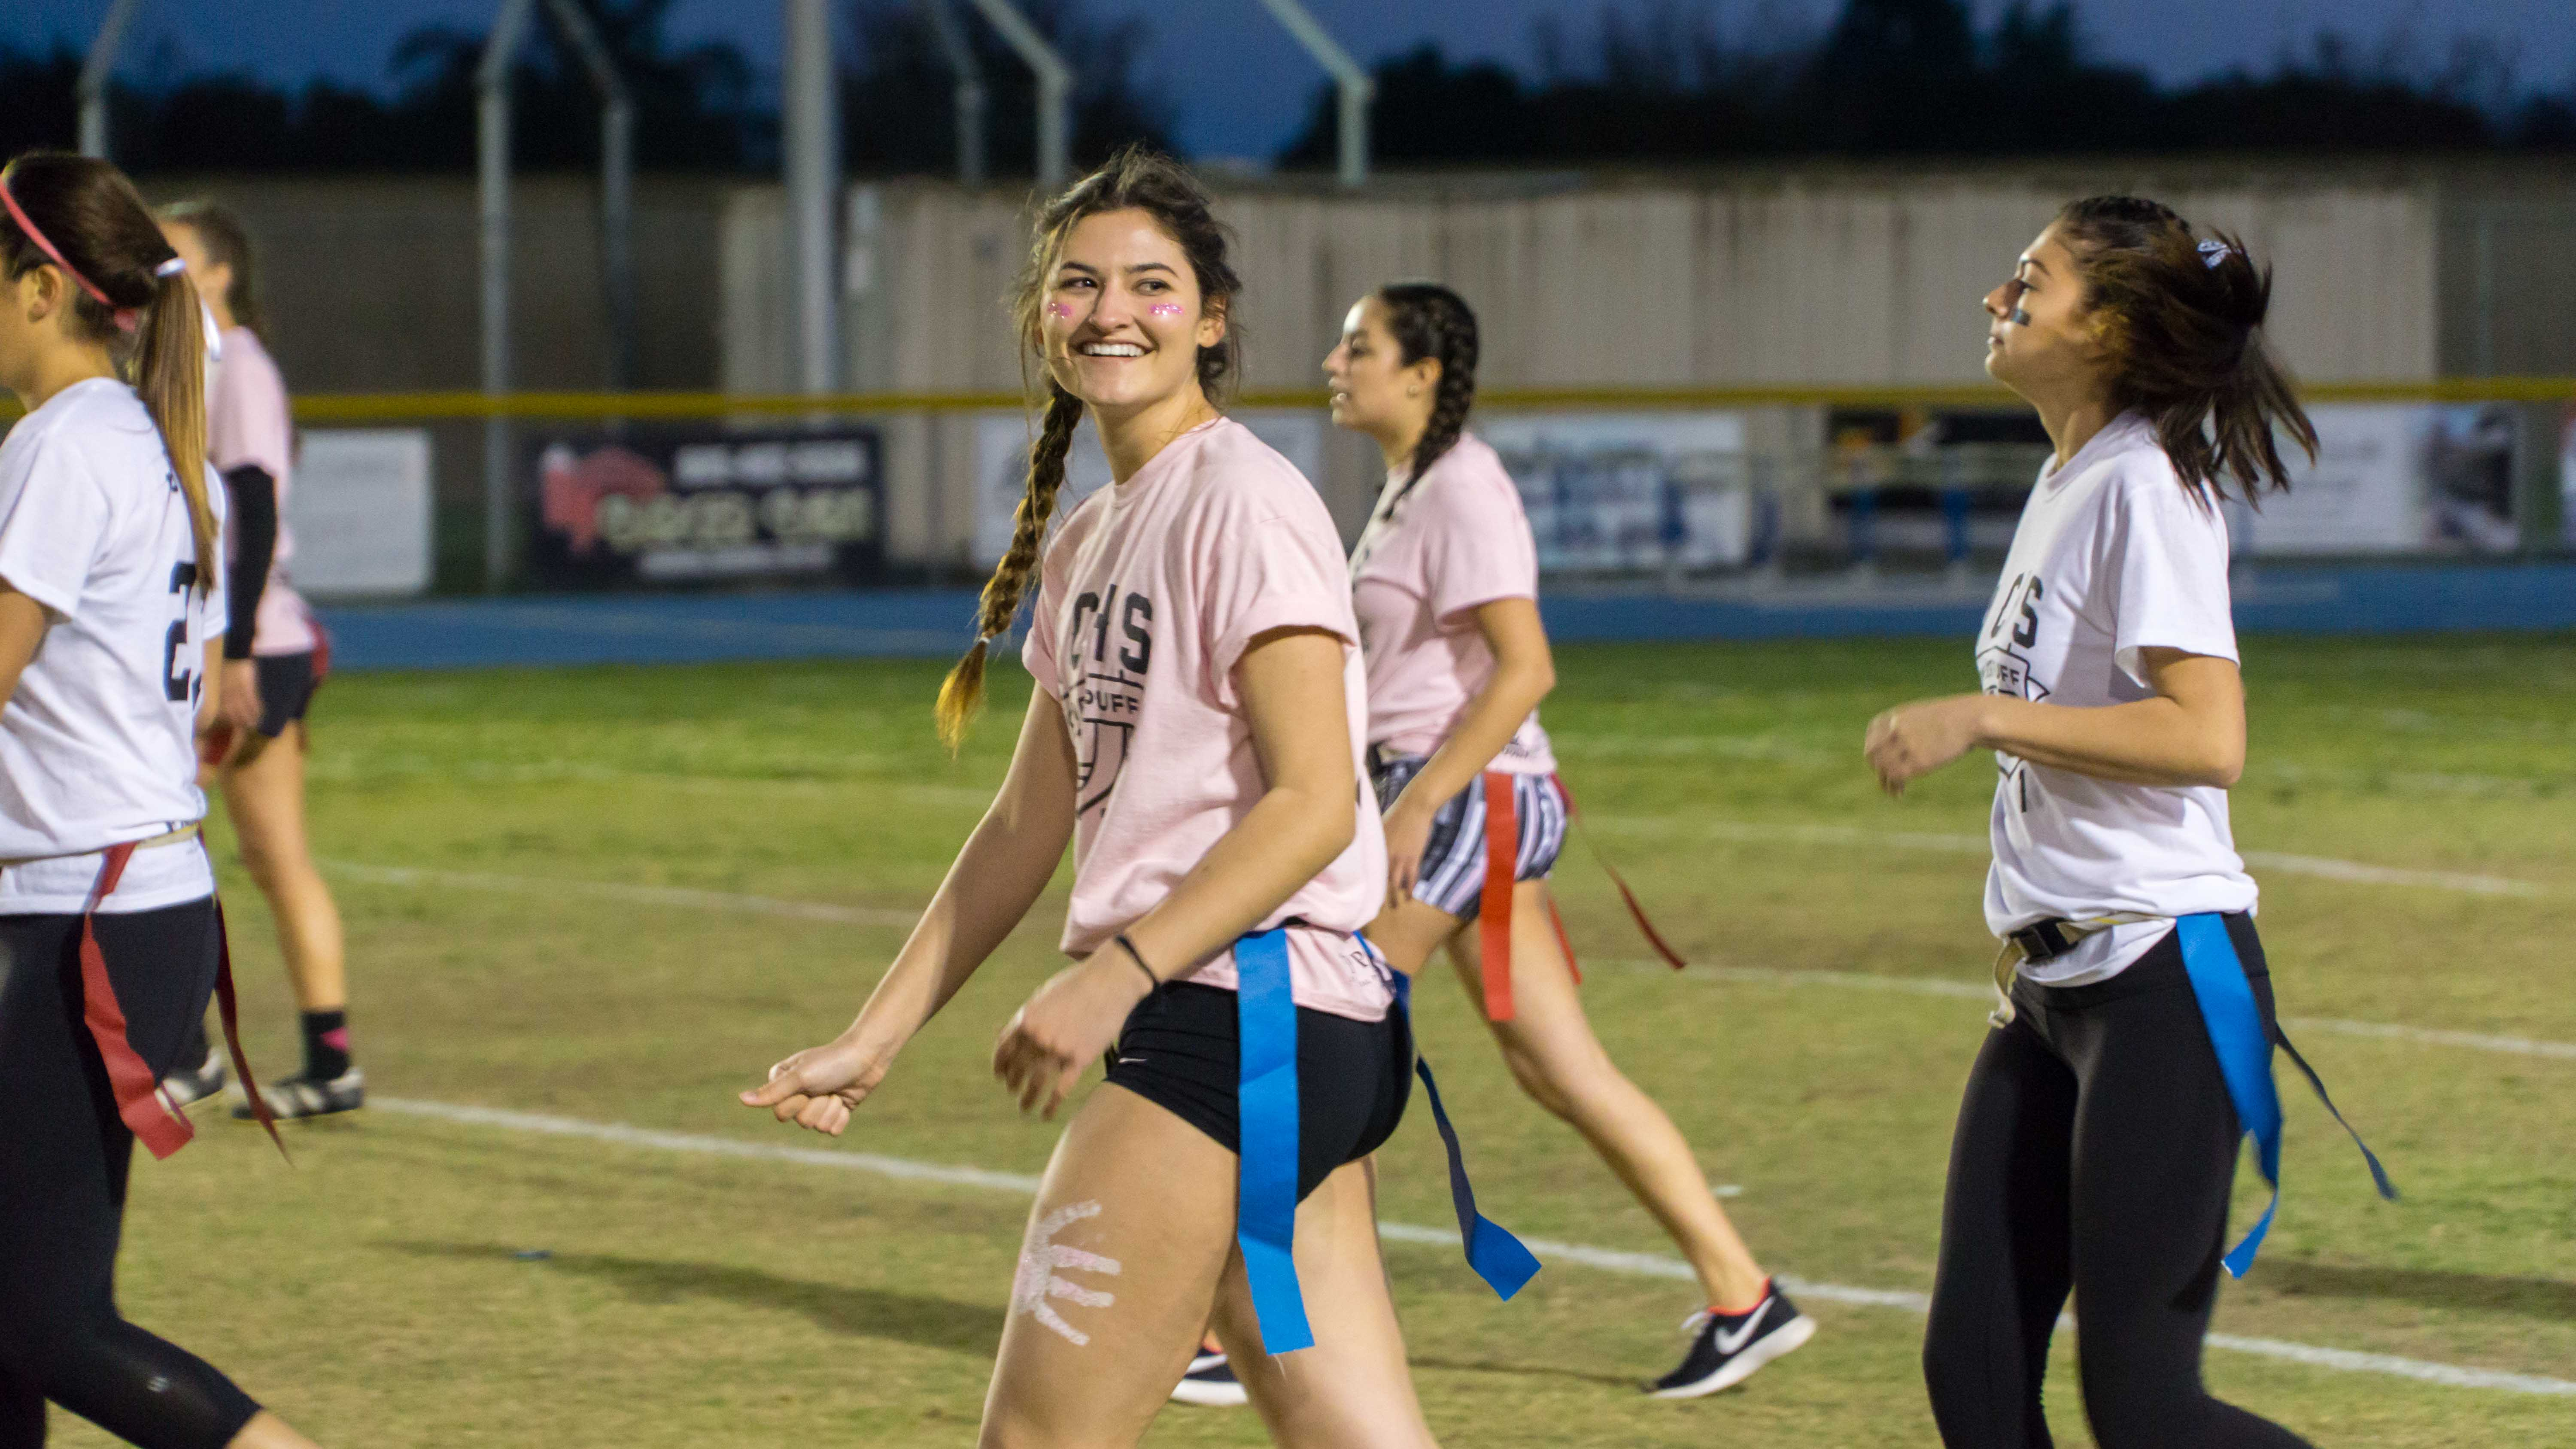 Sydney Means, senior, smiles at her teammates as she walks back to the huddle.